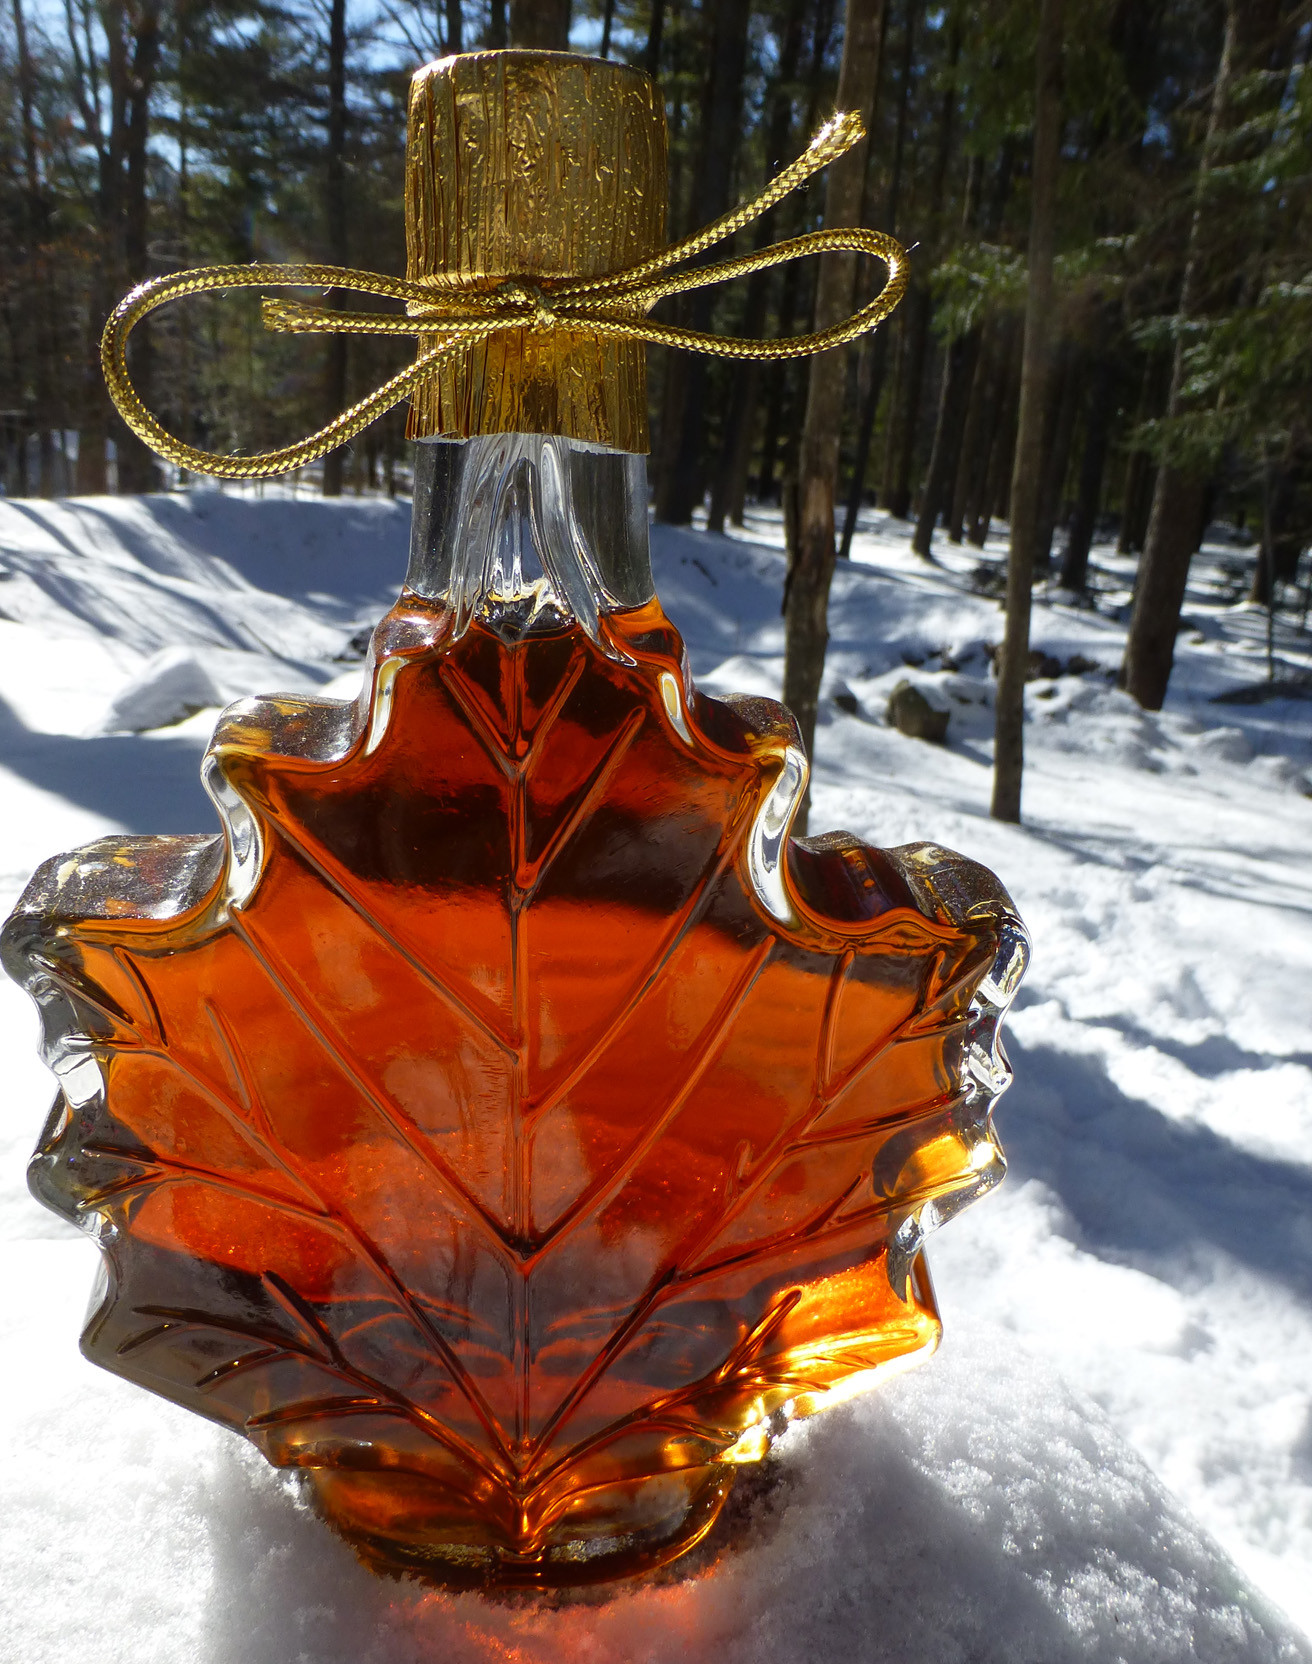 Real Adirondack maple syrup in the famous glass maple leaf jar, made from Eckert's Tree Farm!